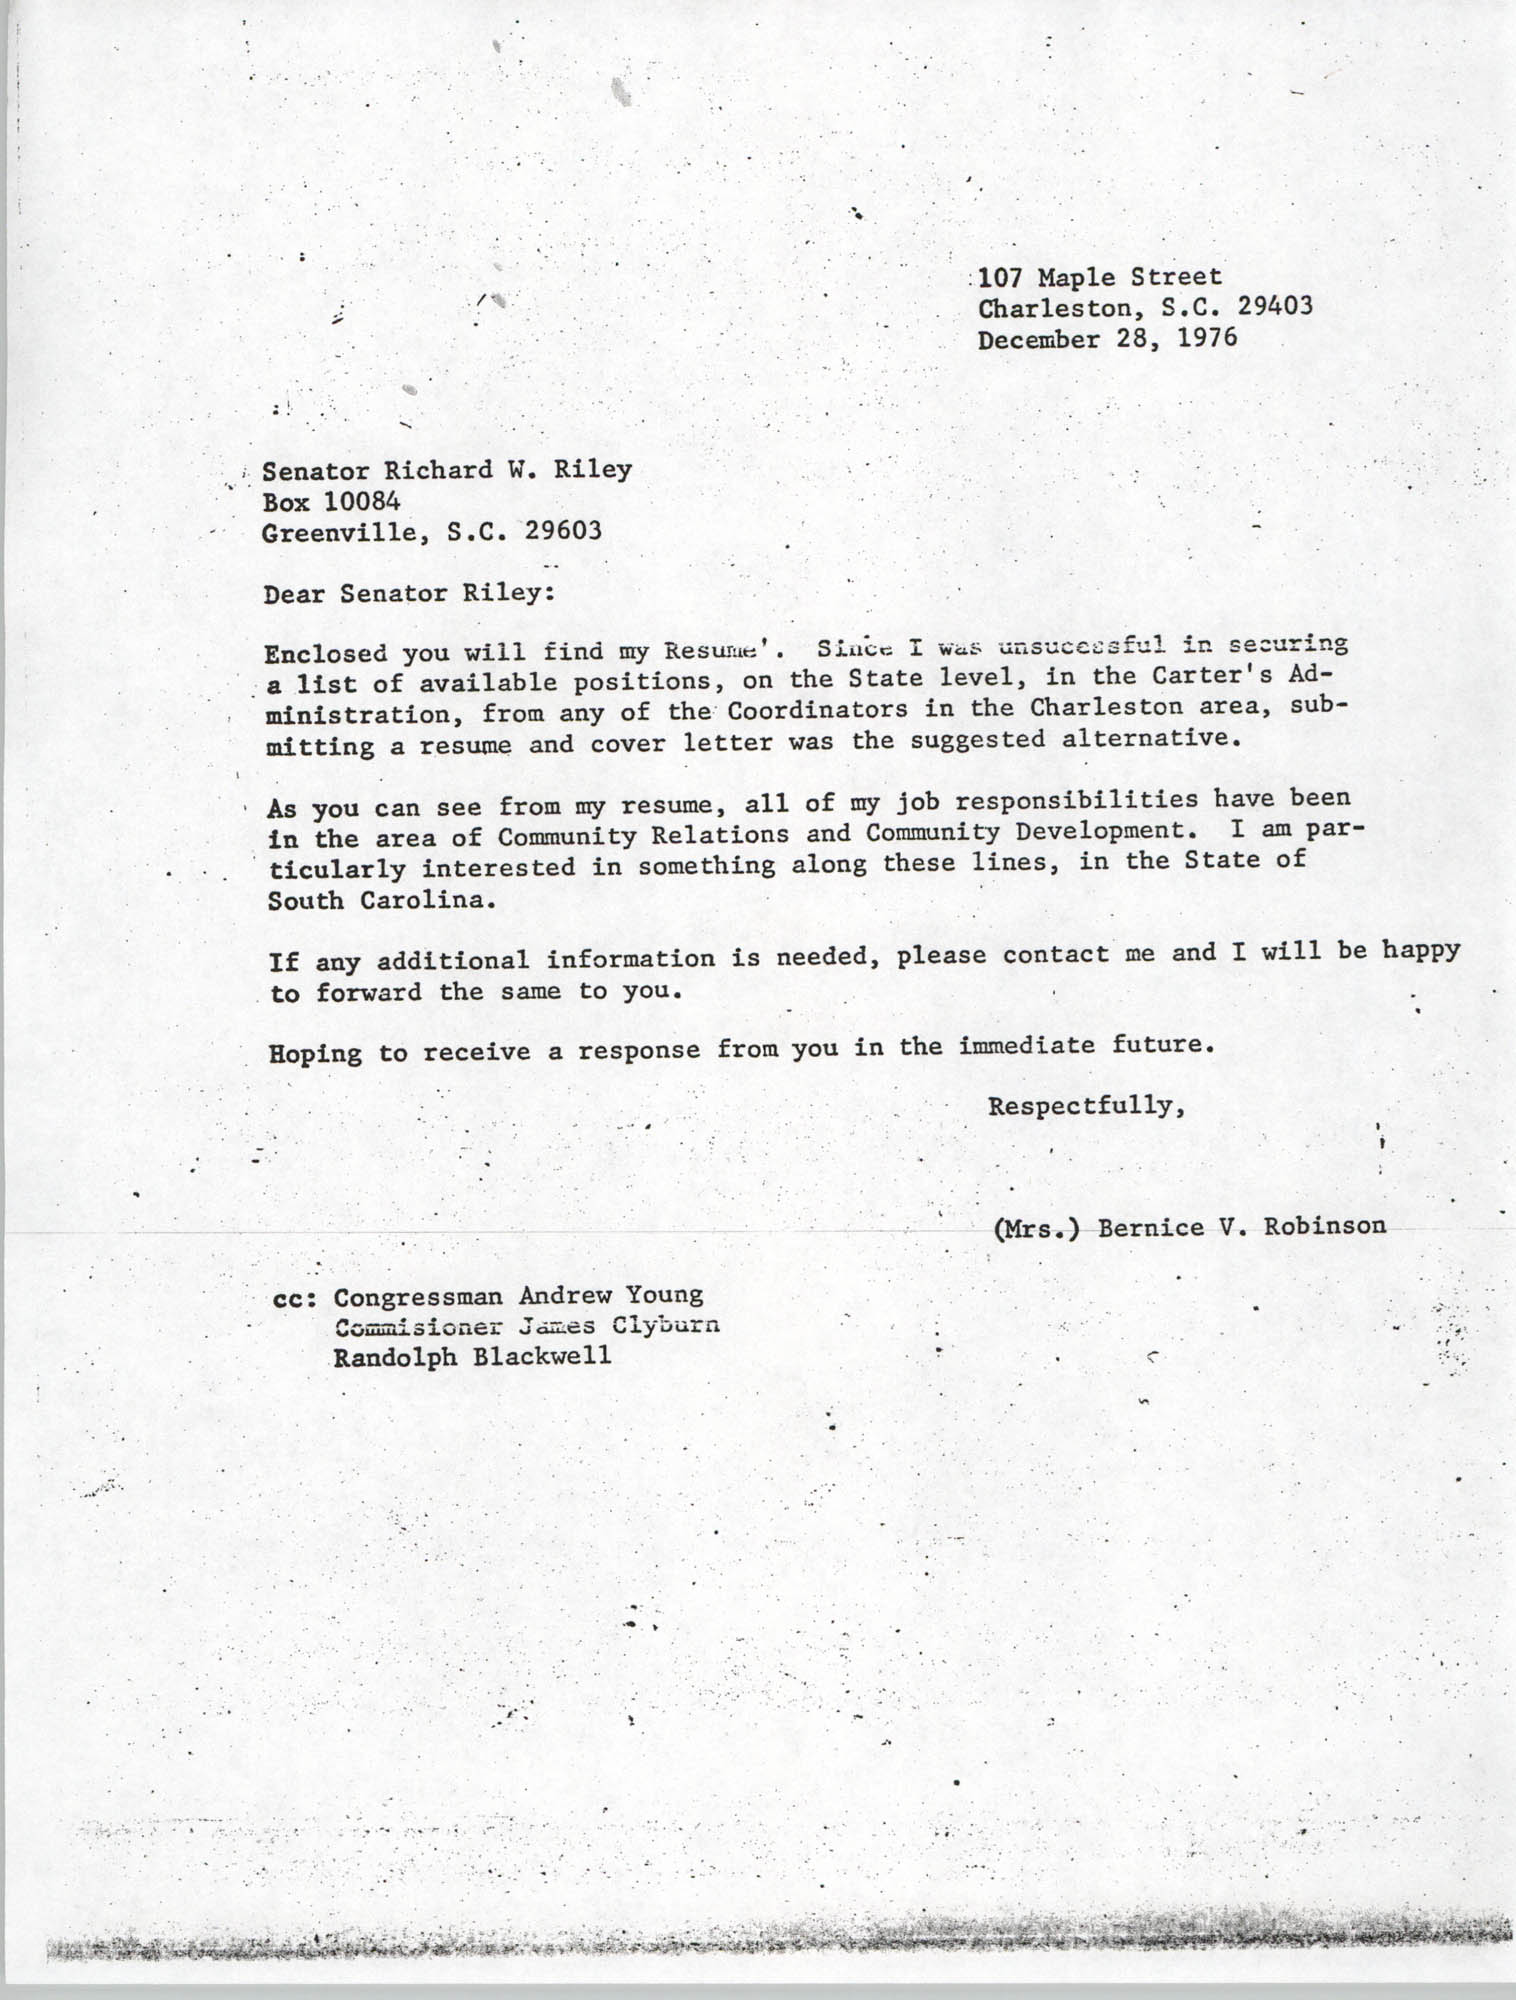 Letter from Bernice V. Robinson to Richard W. Riley, December 28, 1976